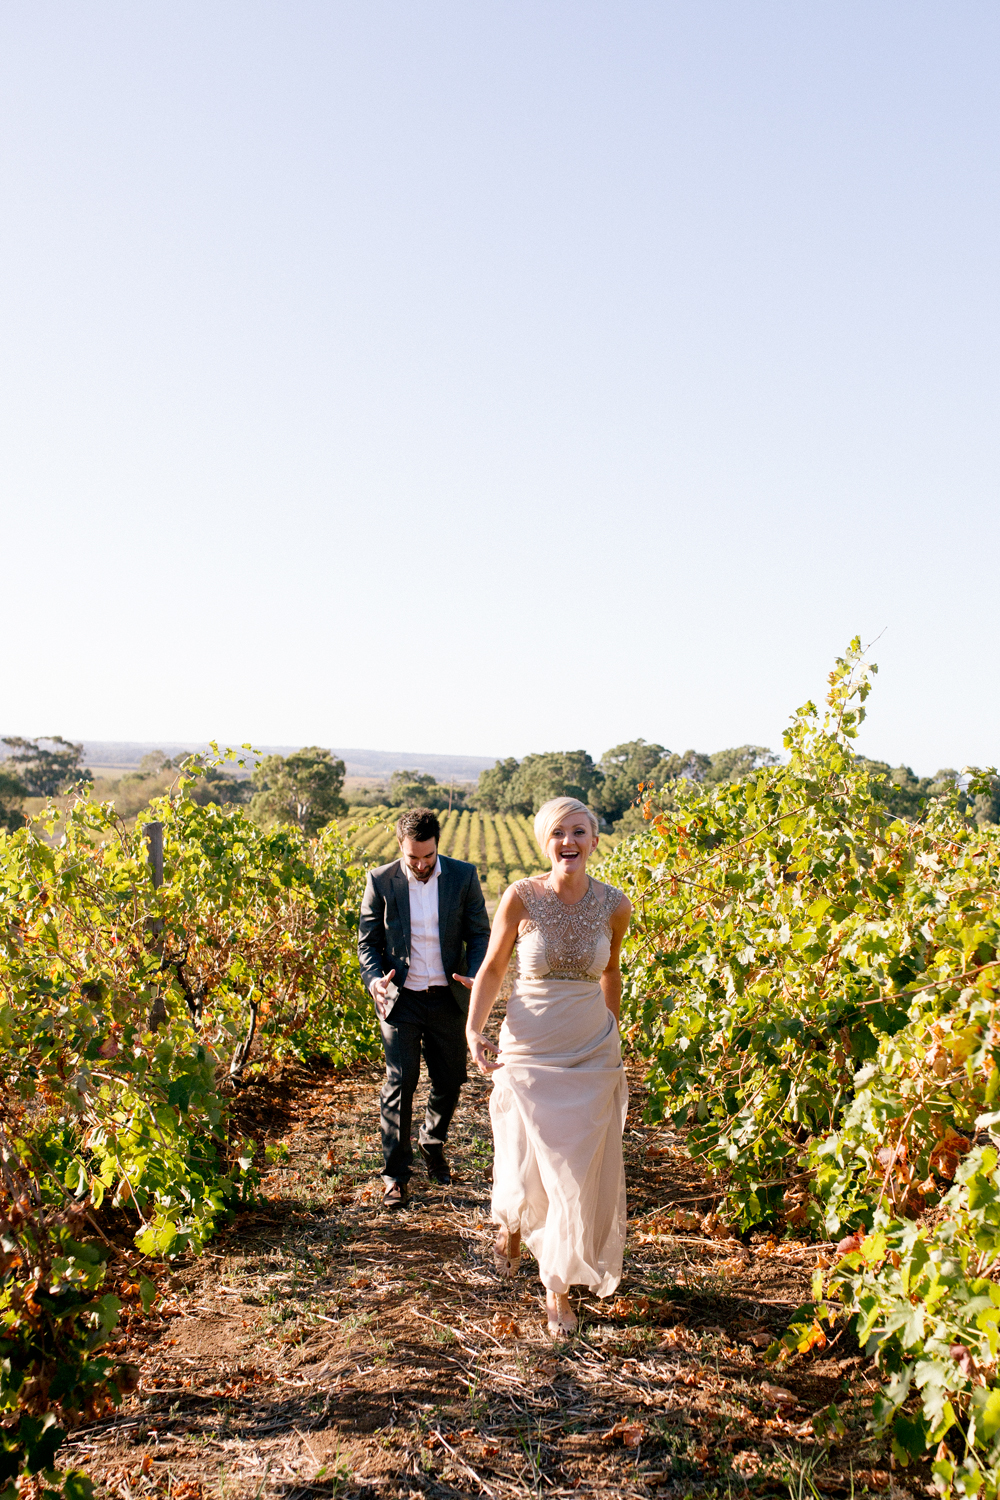 404-Byron-Bay-Wedding-Photographer-Carly-Tia-Photography.jpg